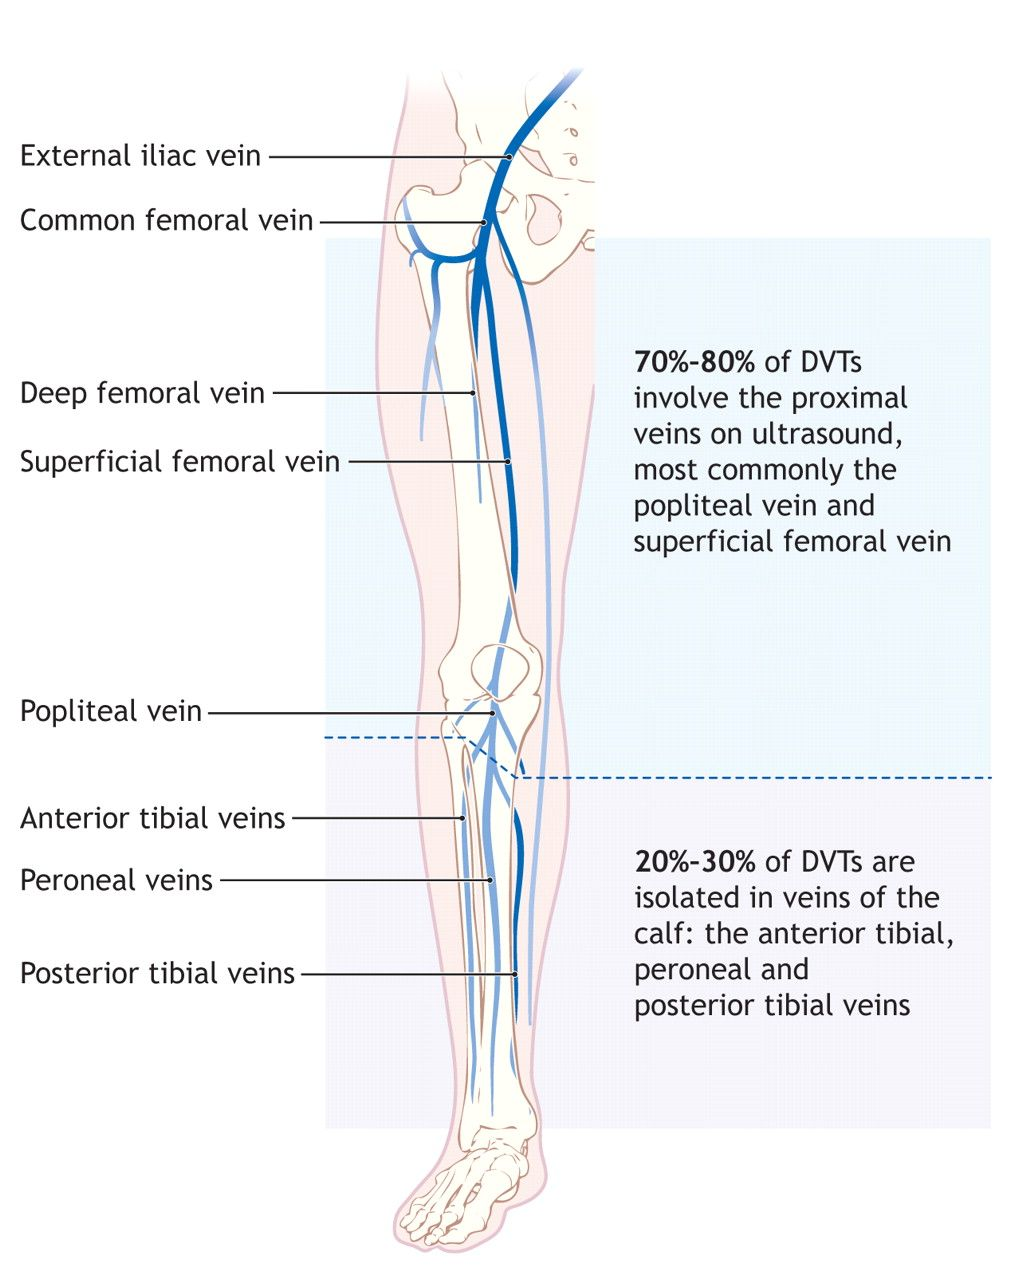 The left panel shows the anterior view of veins in the legs, and ...